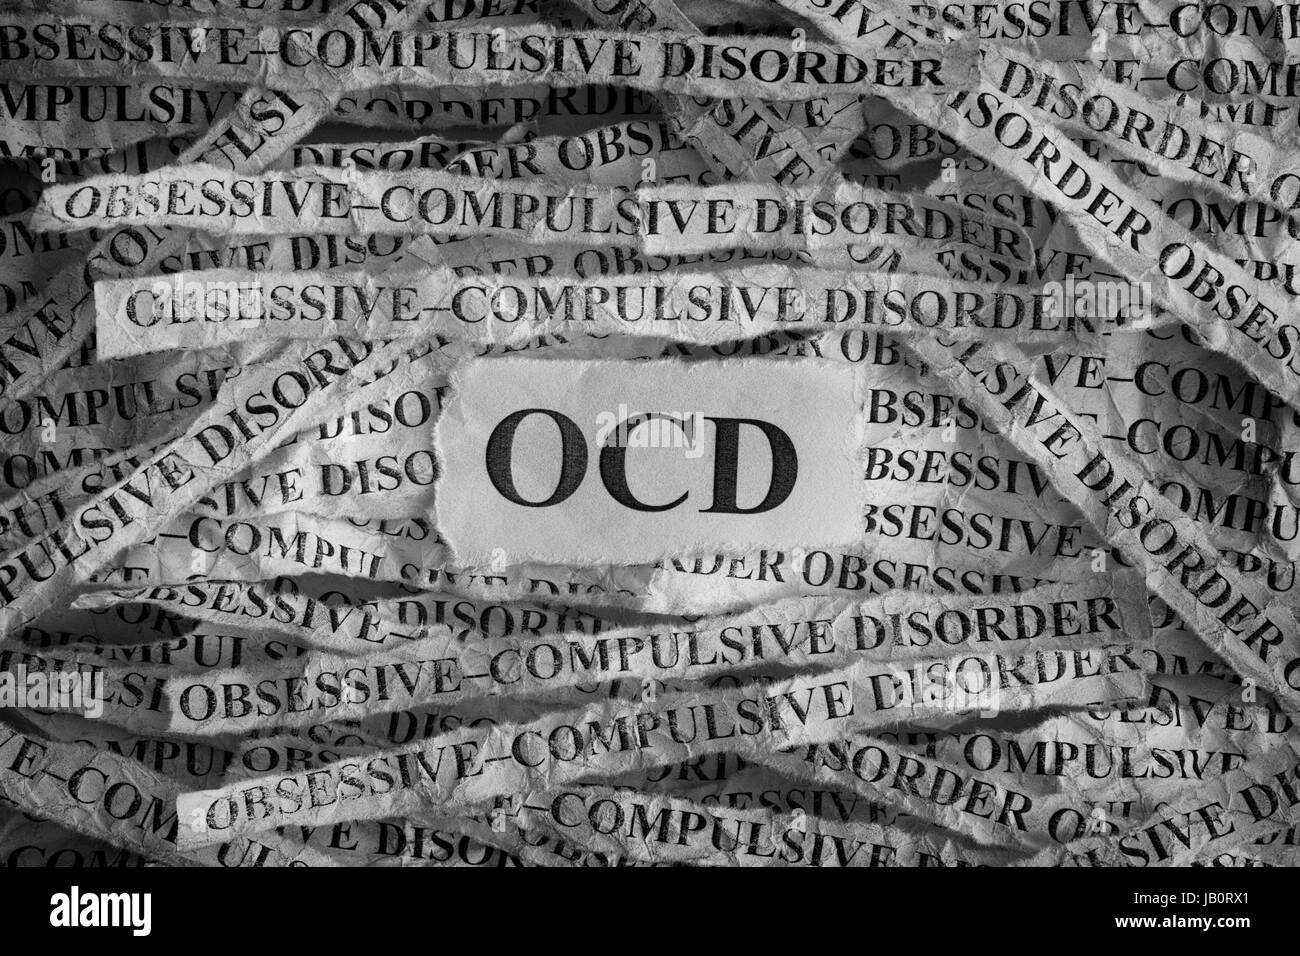 Obsessive compulsive disorder (OCD). Torn pieces of paper with the words Obsessive compulsive disorder. Concept - Stock Image